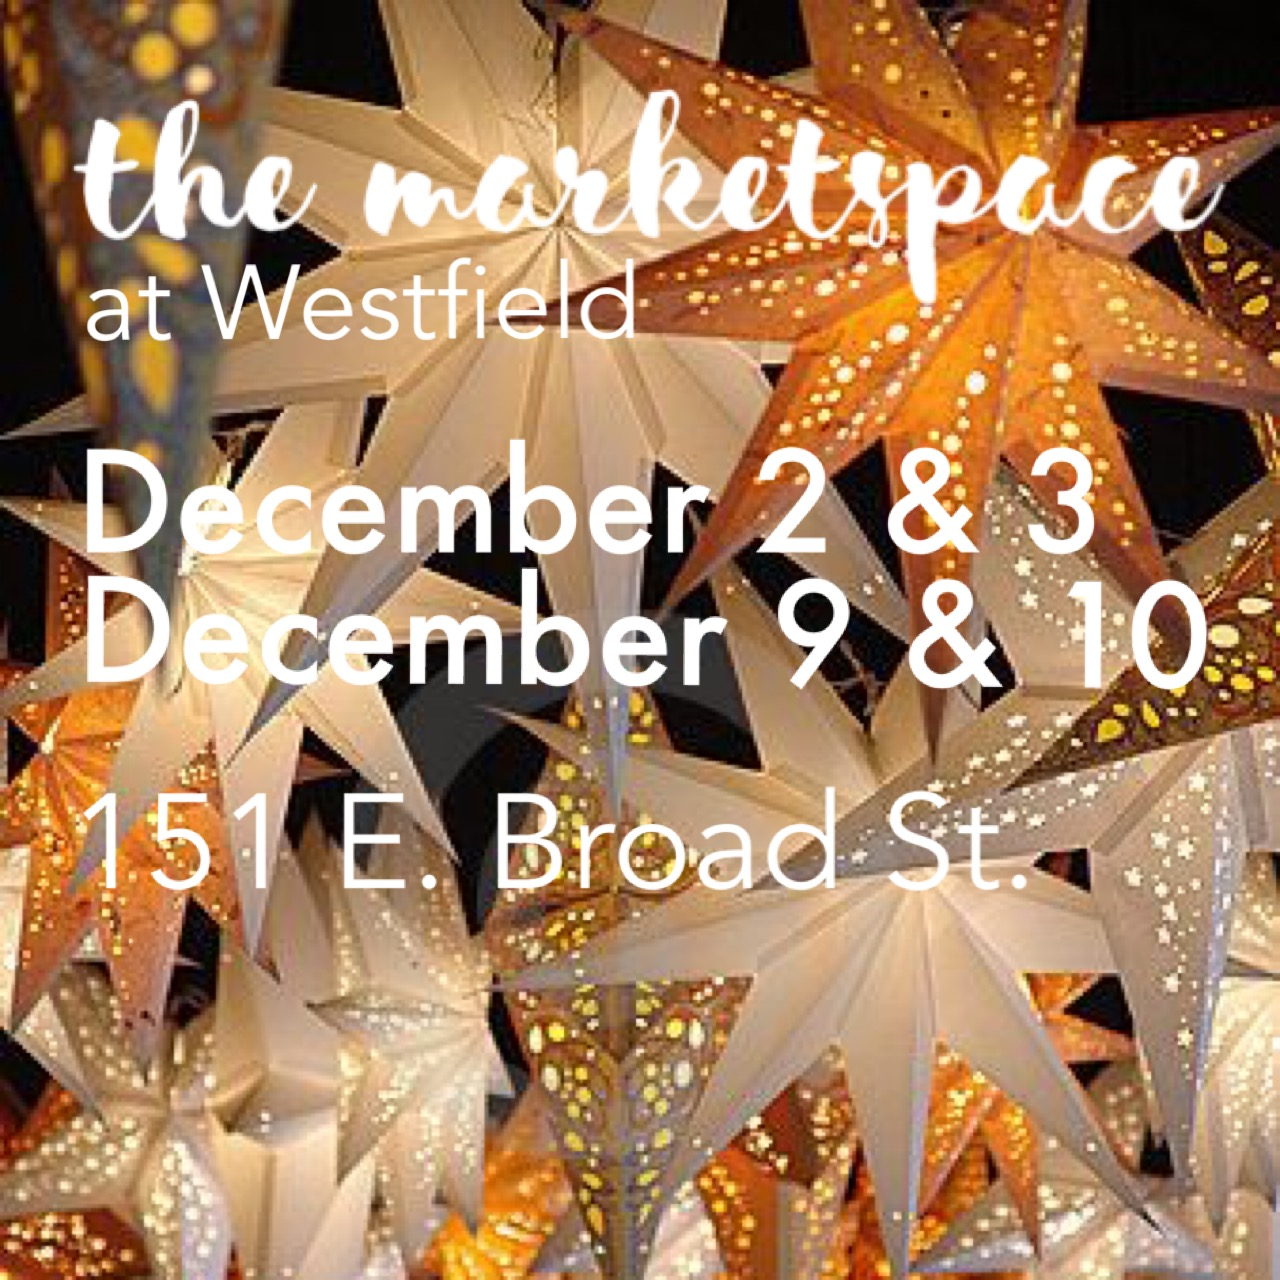 The Marketspace at Westfield, a Pop-Up Holiday Market, is Coming in December - Nov 1, 2017 Westfield, NJ -- Downtown Westfield has listed The Marketspace at Westfield event the News & Grand Openings section of their website.